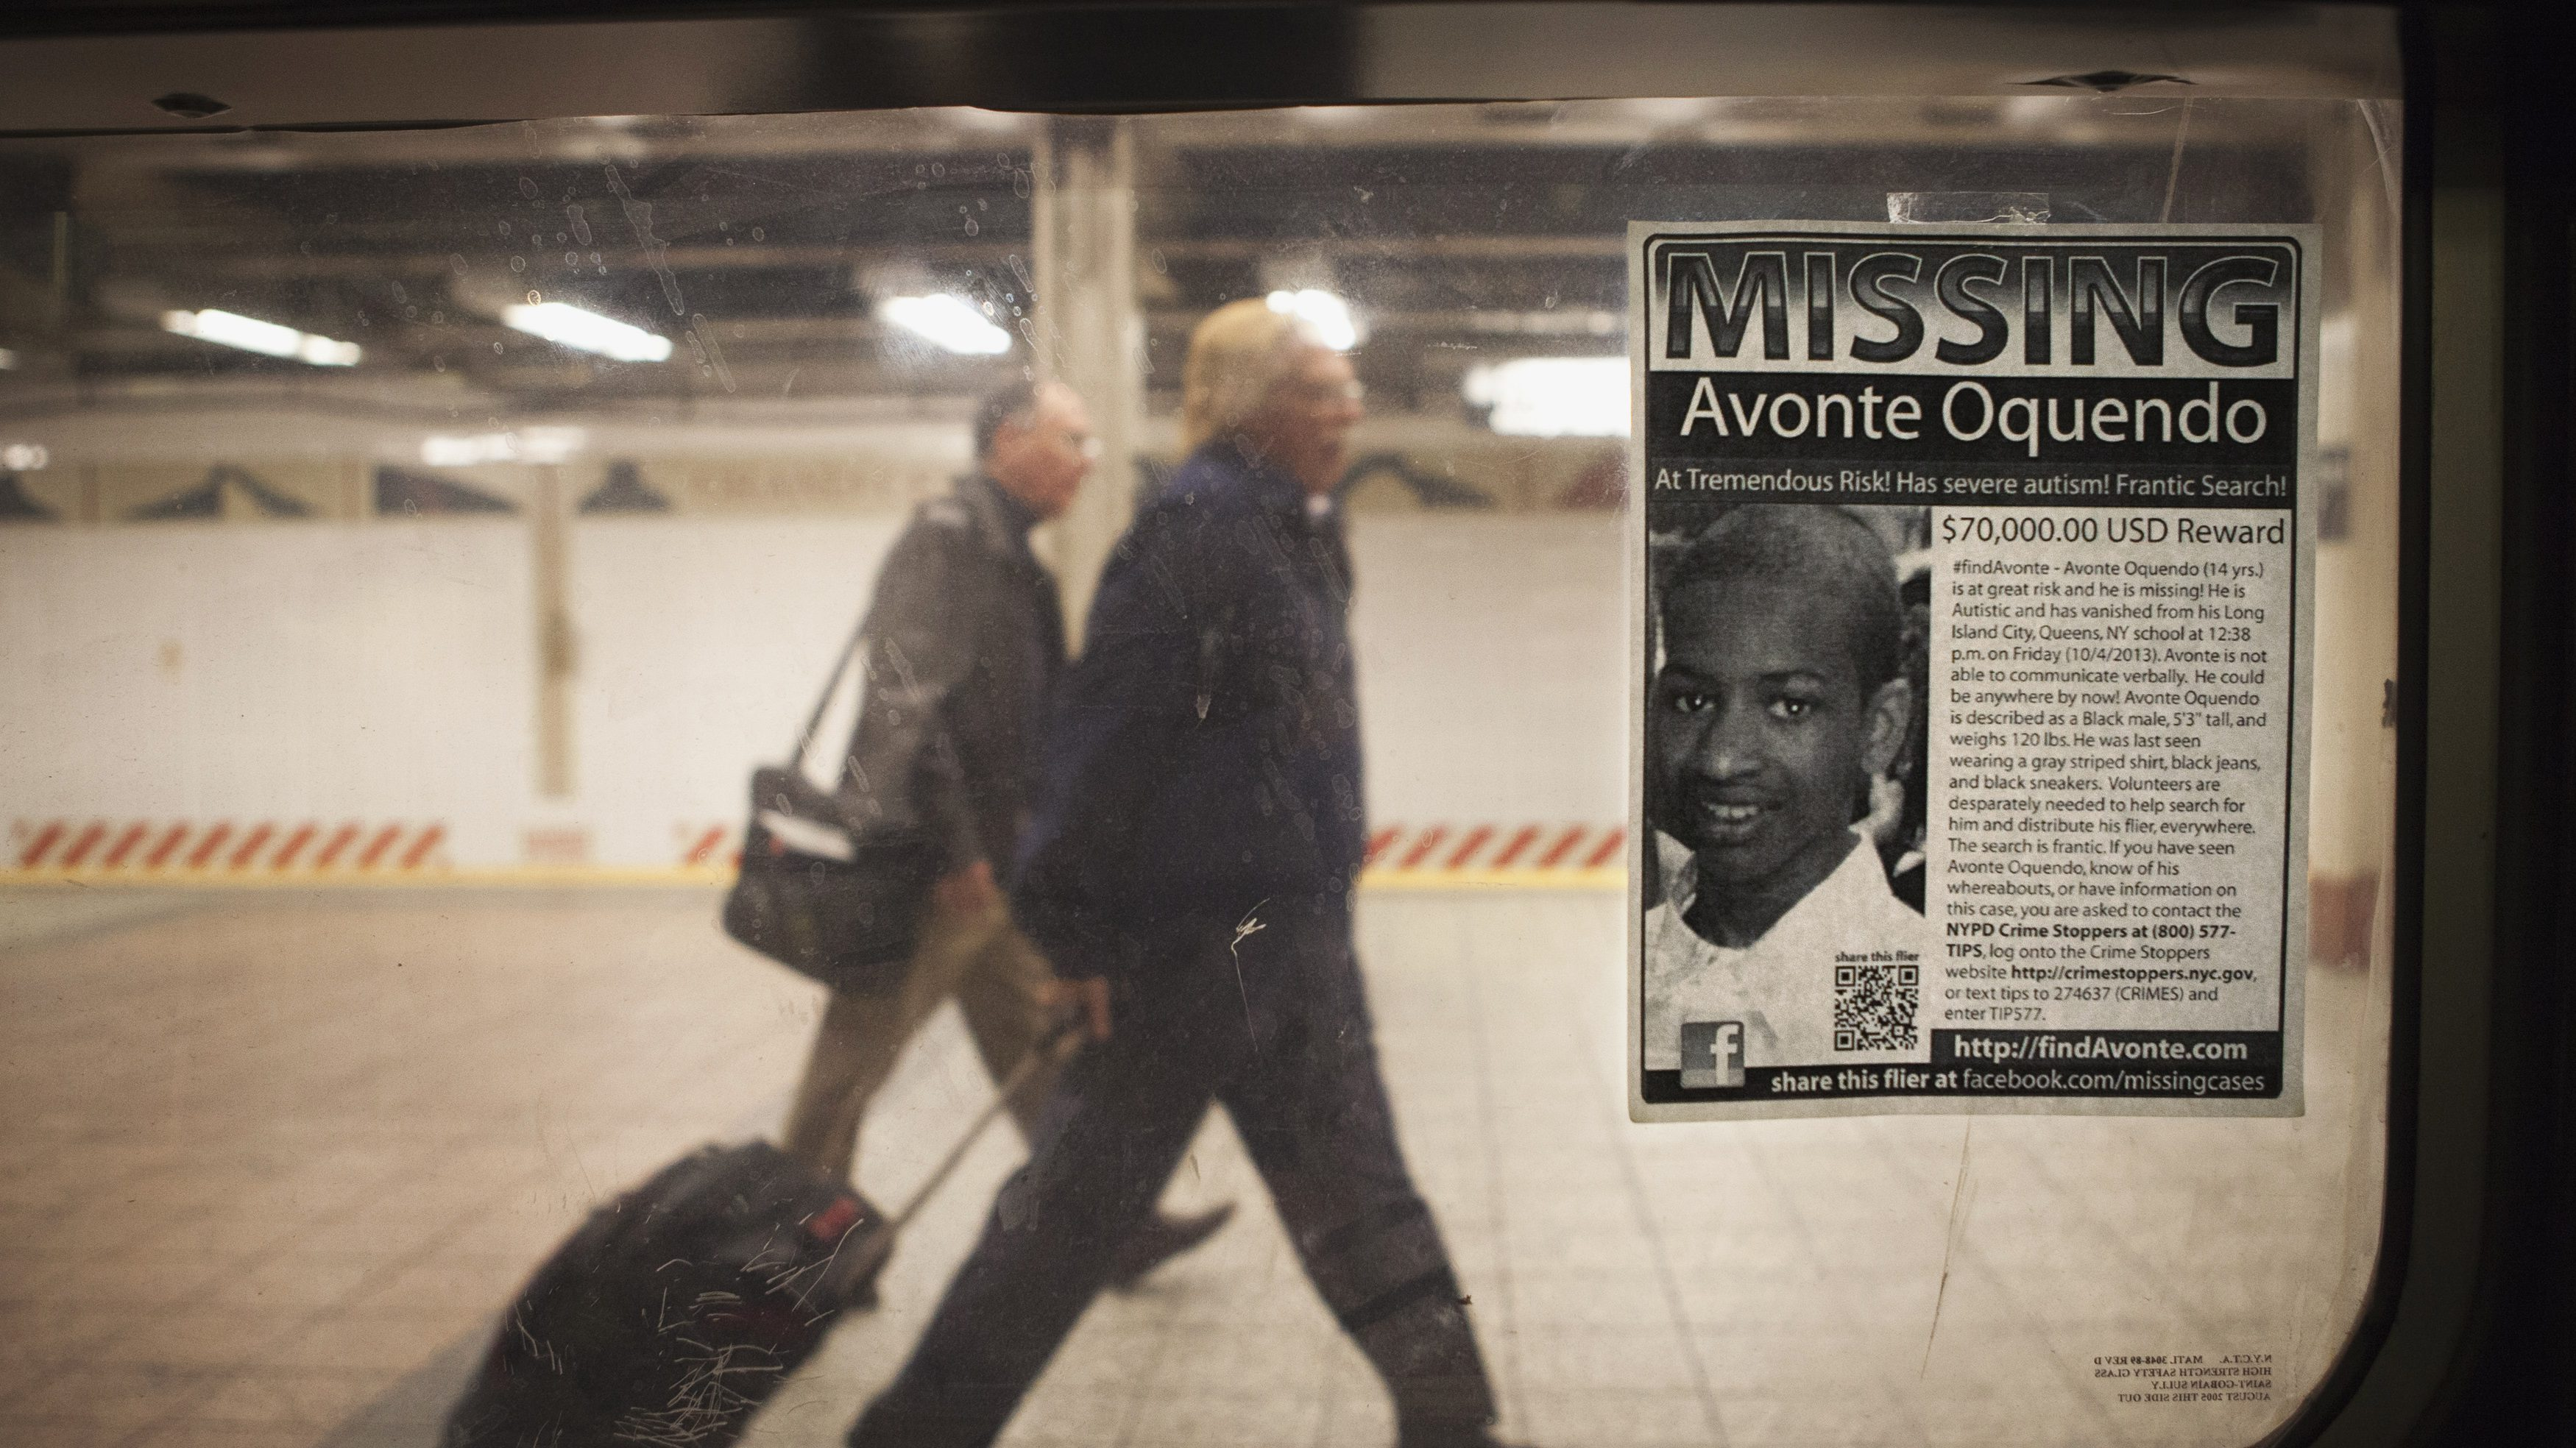 "A missing poster for Avonte Oquendo, a 14-year-old autistic boy who has been missing for 3 weeks since walking out of his school, is posted on a subway window in the Times Square station of New York, October 25, 2013. New York Police commissioner Ray Kelly has been quoted in local media saying ""Unfortunately, we are not hopeful that we're going to find this young man alive, but we are continuing our search.""   REUTERS/Carlo Allegri  (UNITED STATES - Tags: SOCIETY TRANSPORT) - RTX14OBU"